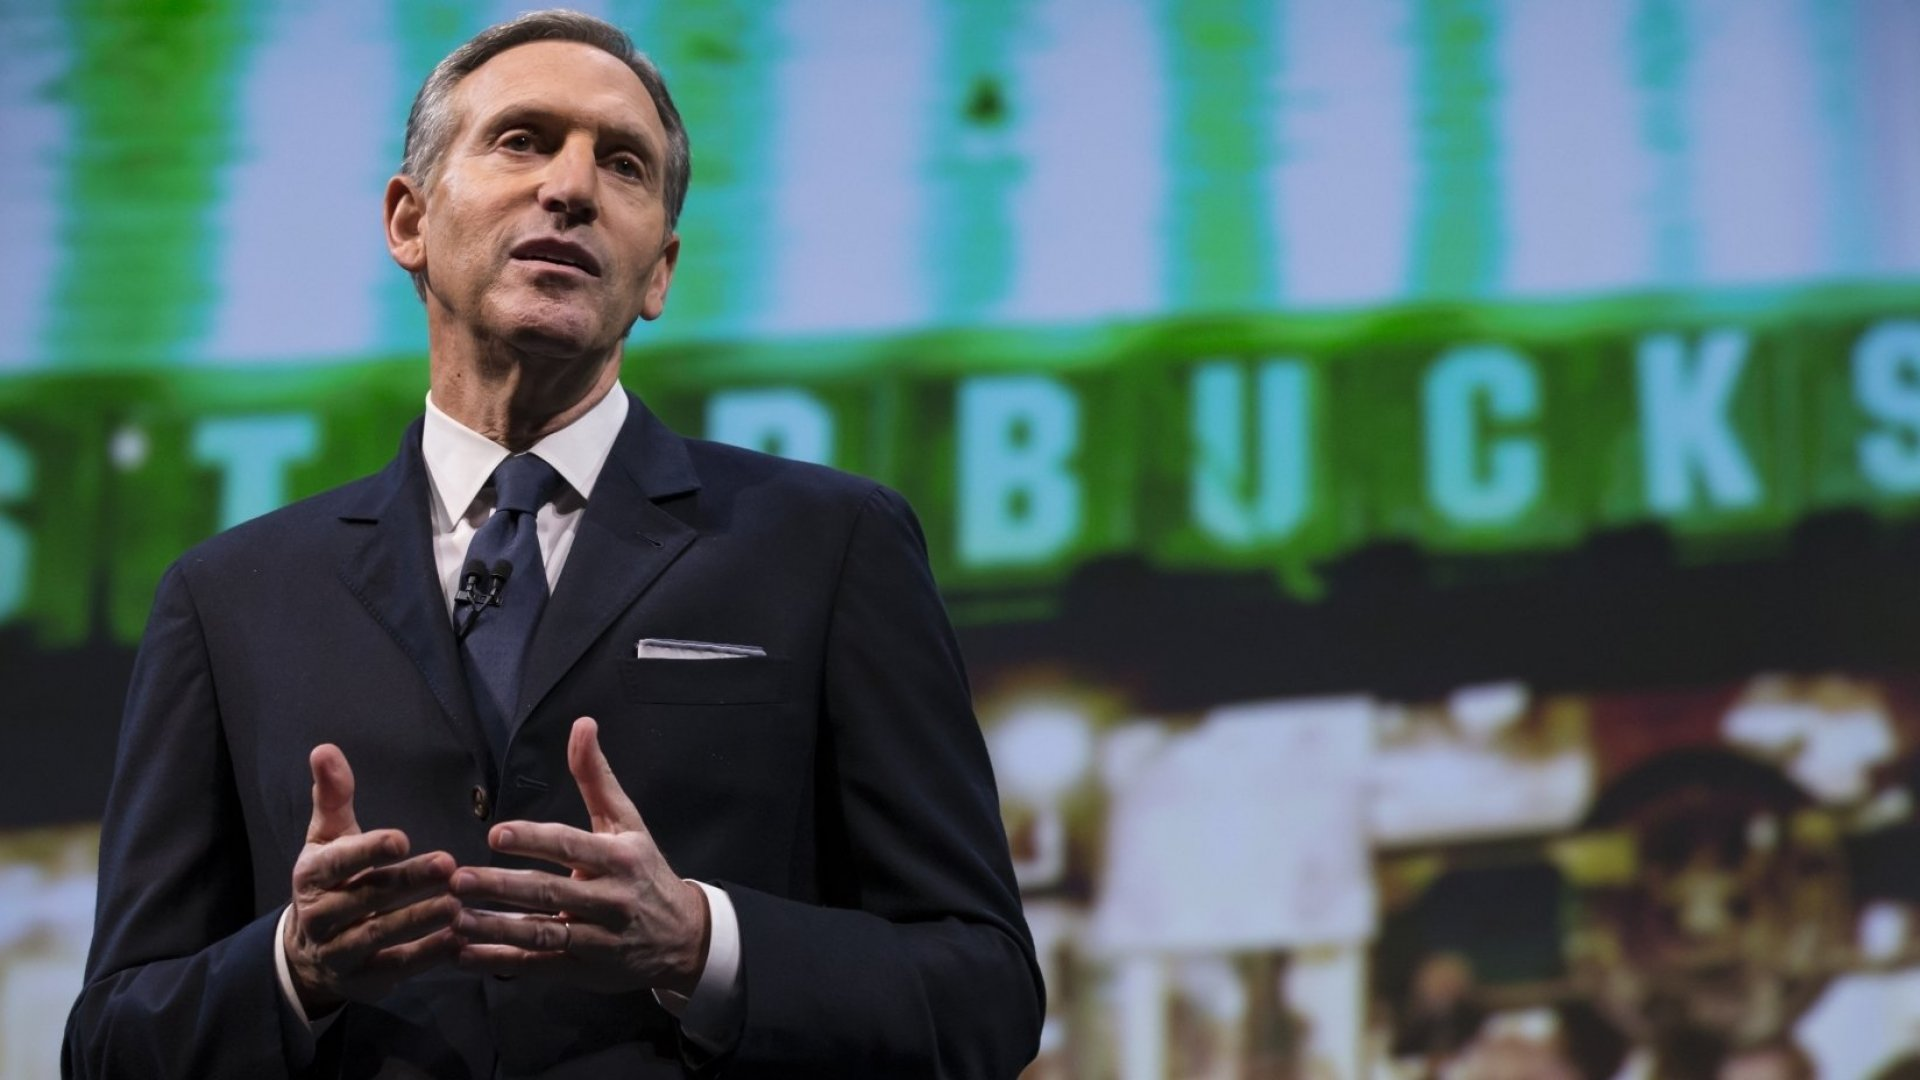 Starbucks Chairman and former CEO Howard Schultz.